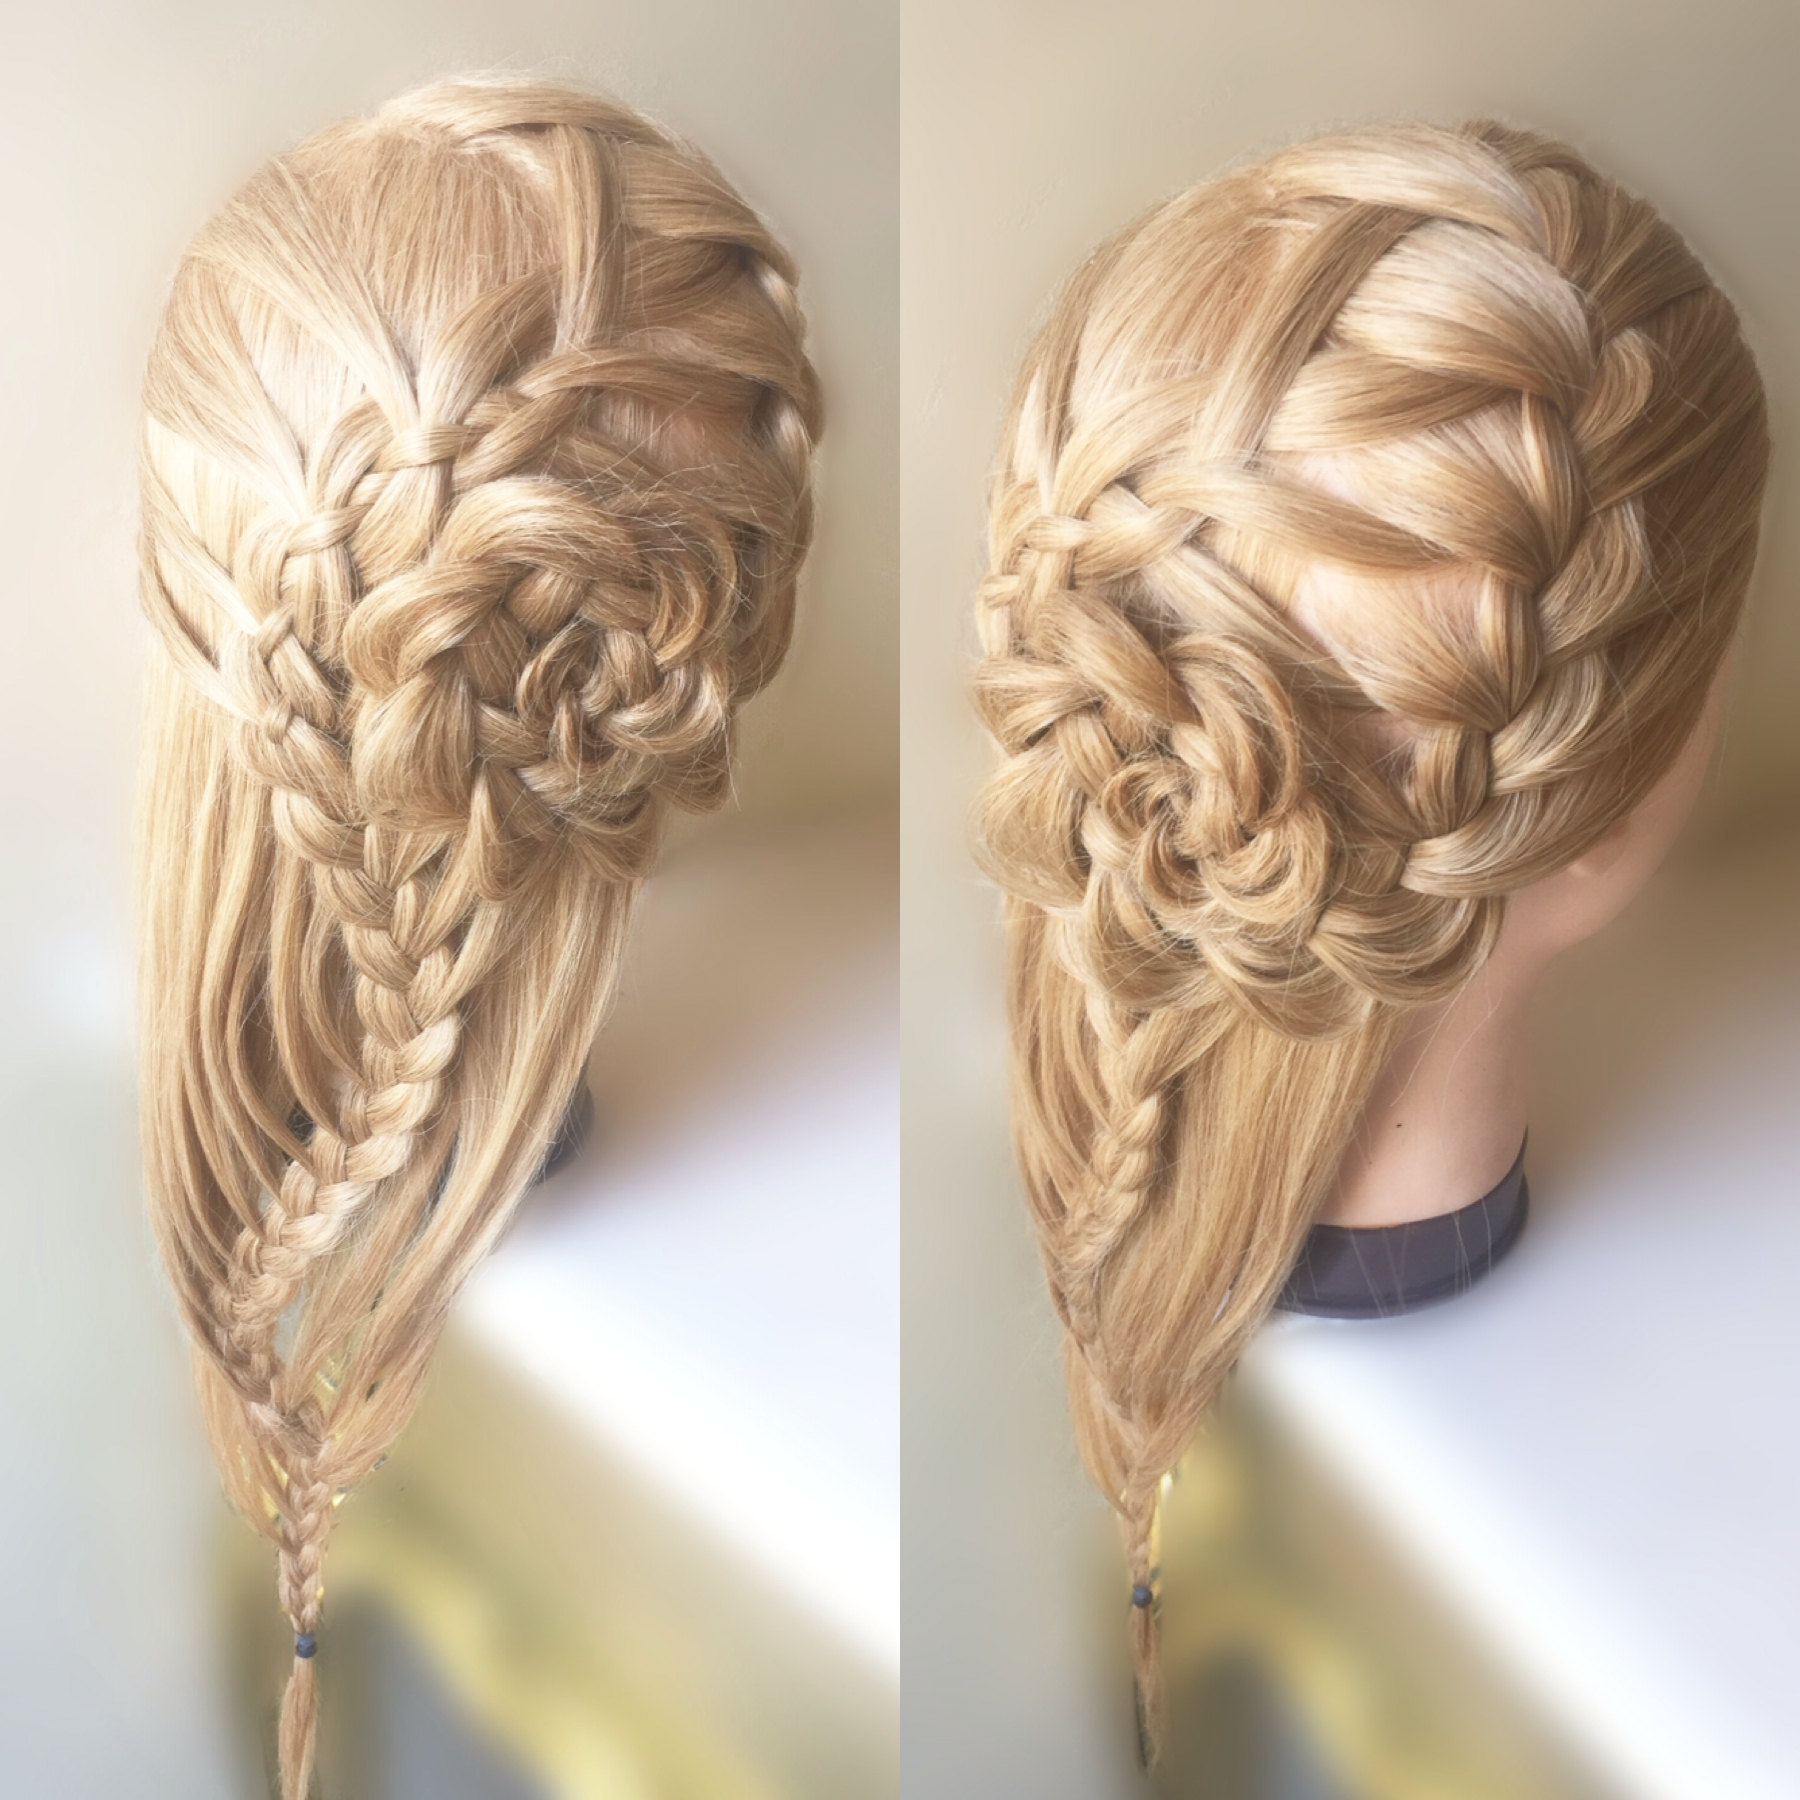 Waterfall Braid Into Four/three Strand Snake Braid With A Pertaining To Favorite Three Strand Pigtails Braid Hairstyles (View 9 of 20)